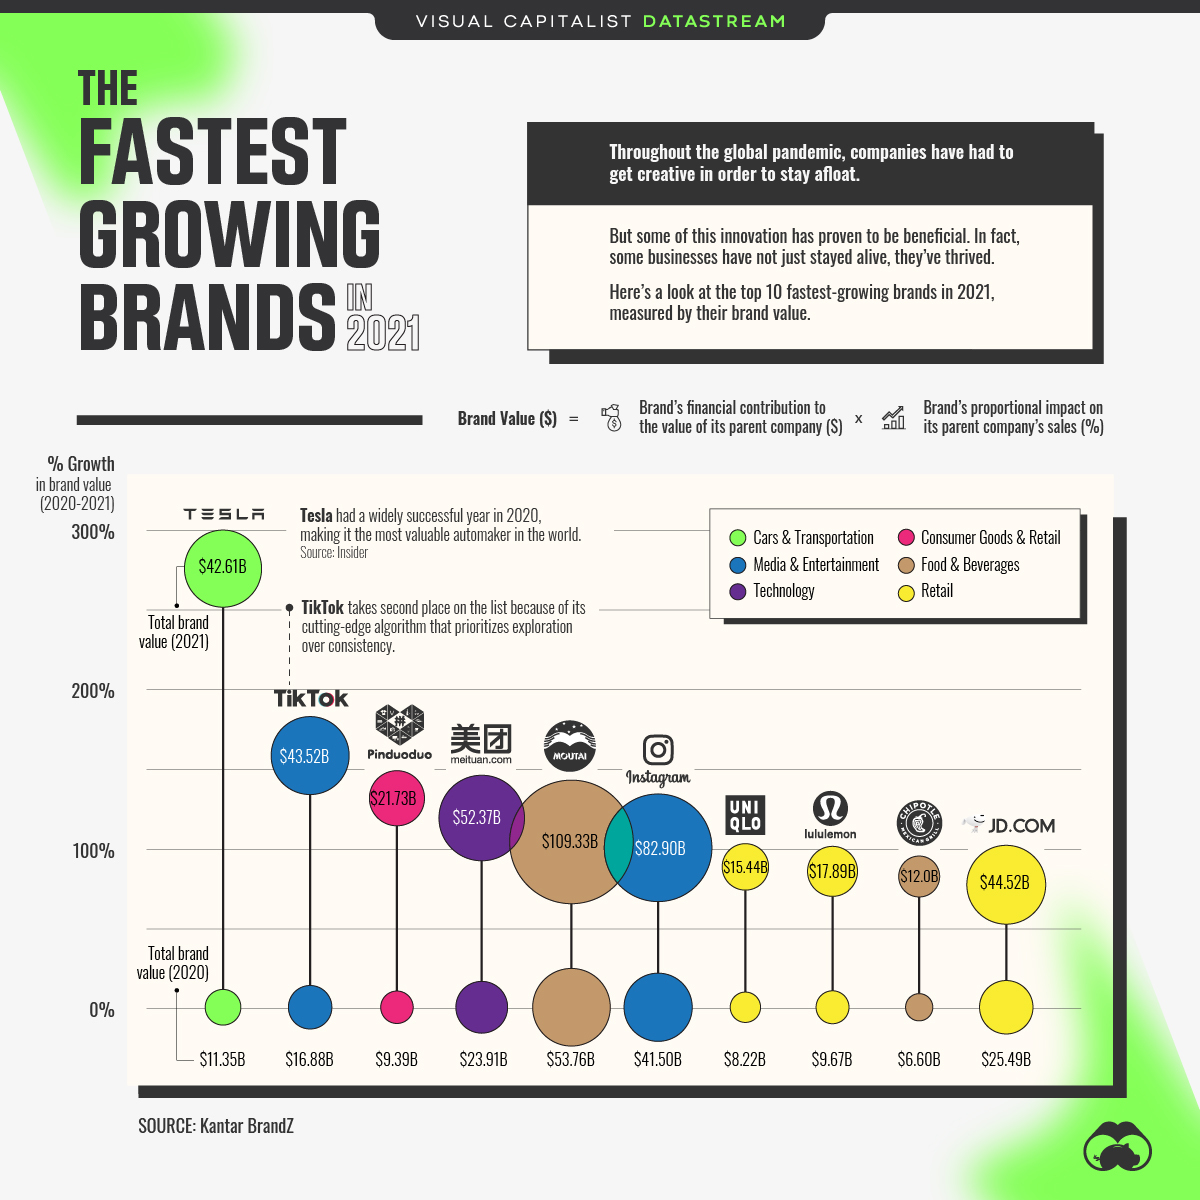 Fastest Growing Brands in 2021